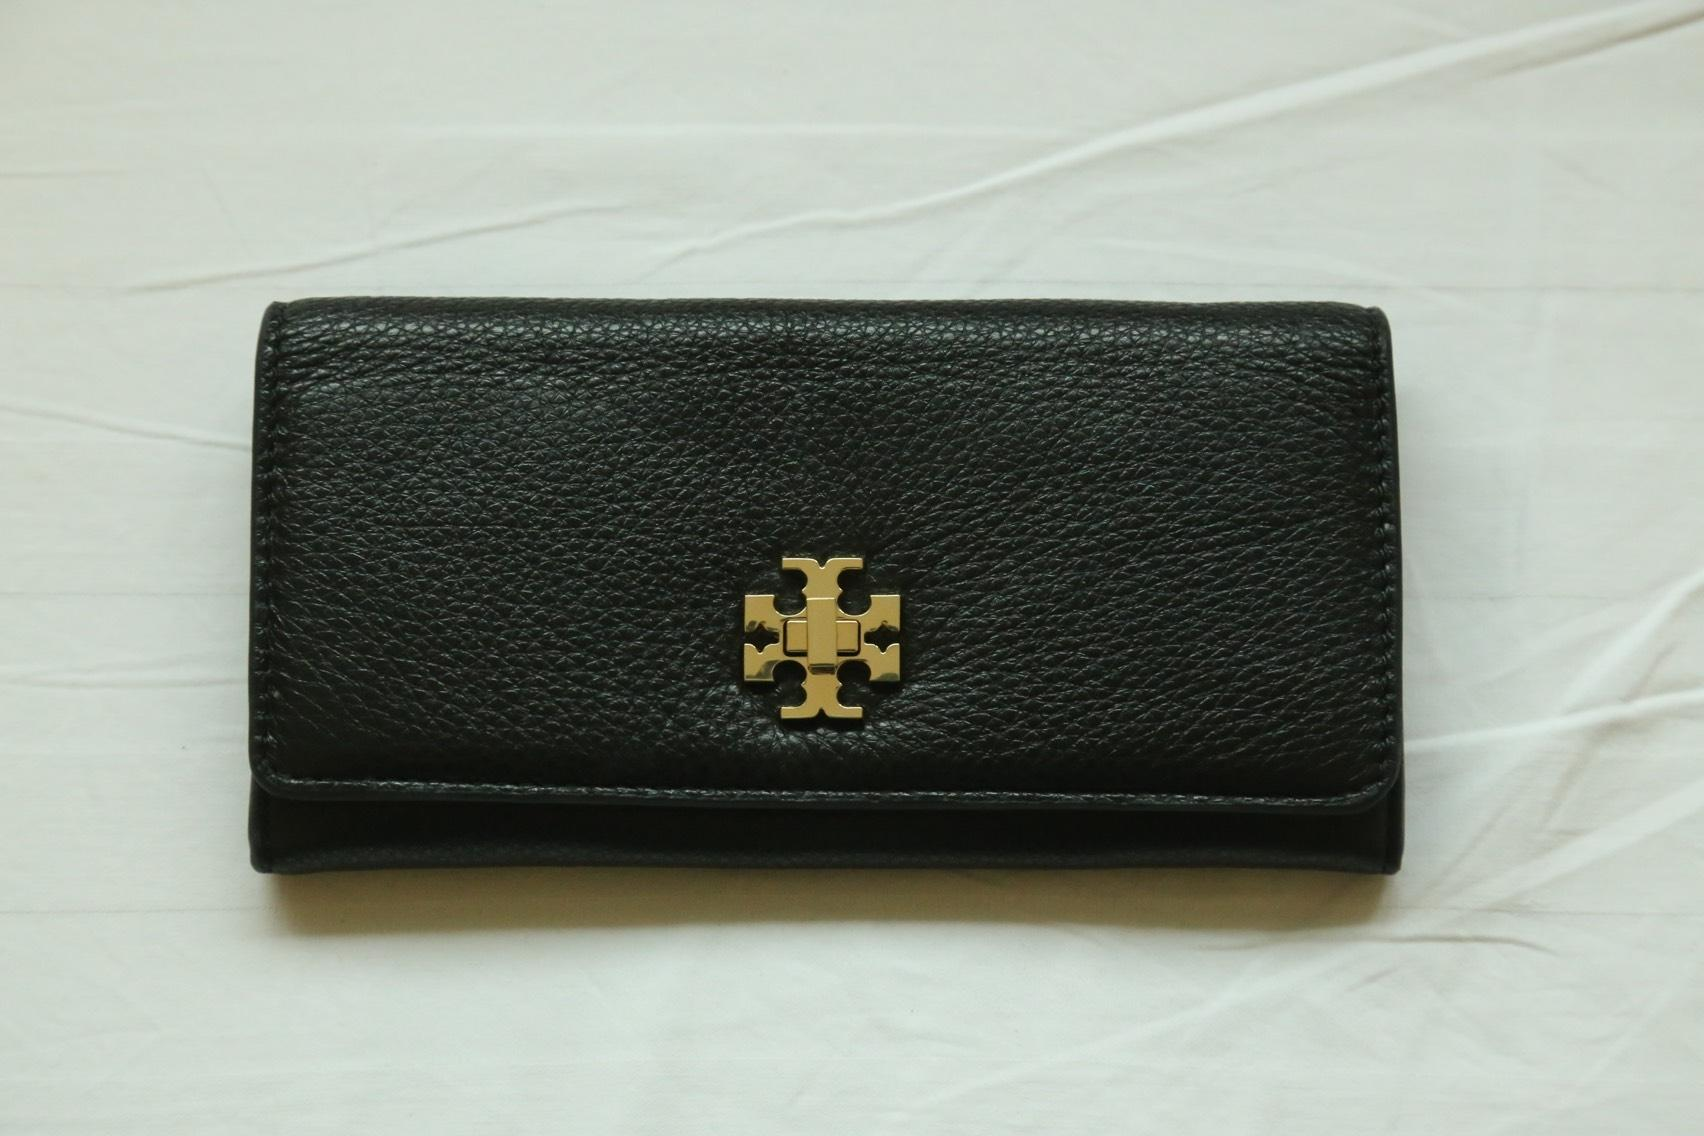 bd0c5818b99a ... coupon code for tory burch tory burch mercer envelope continental wallet.  1234567 08934 e1bf7